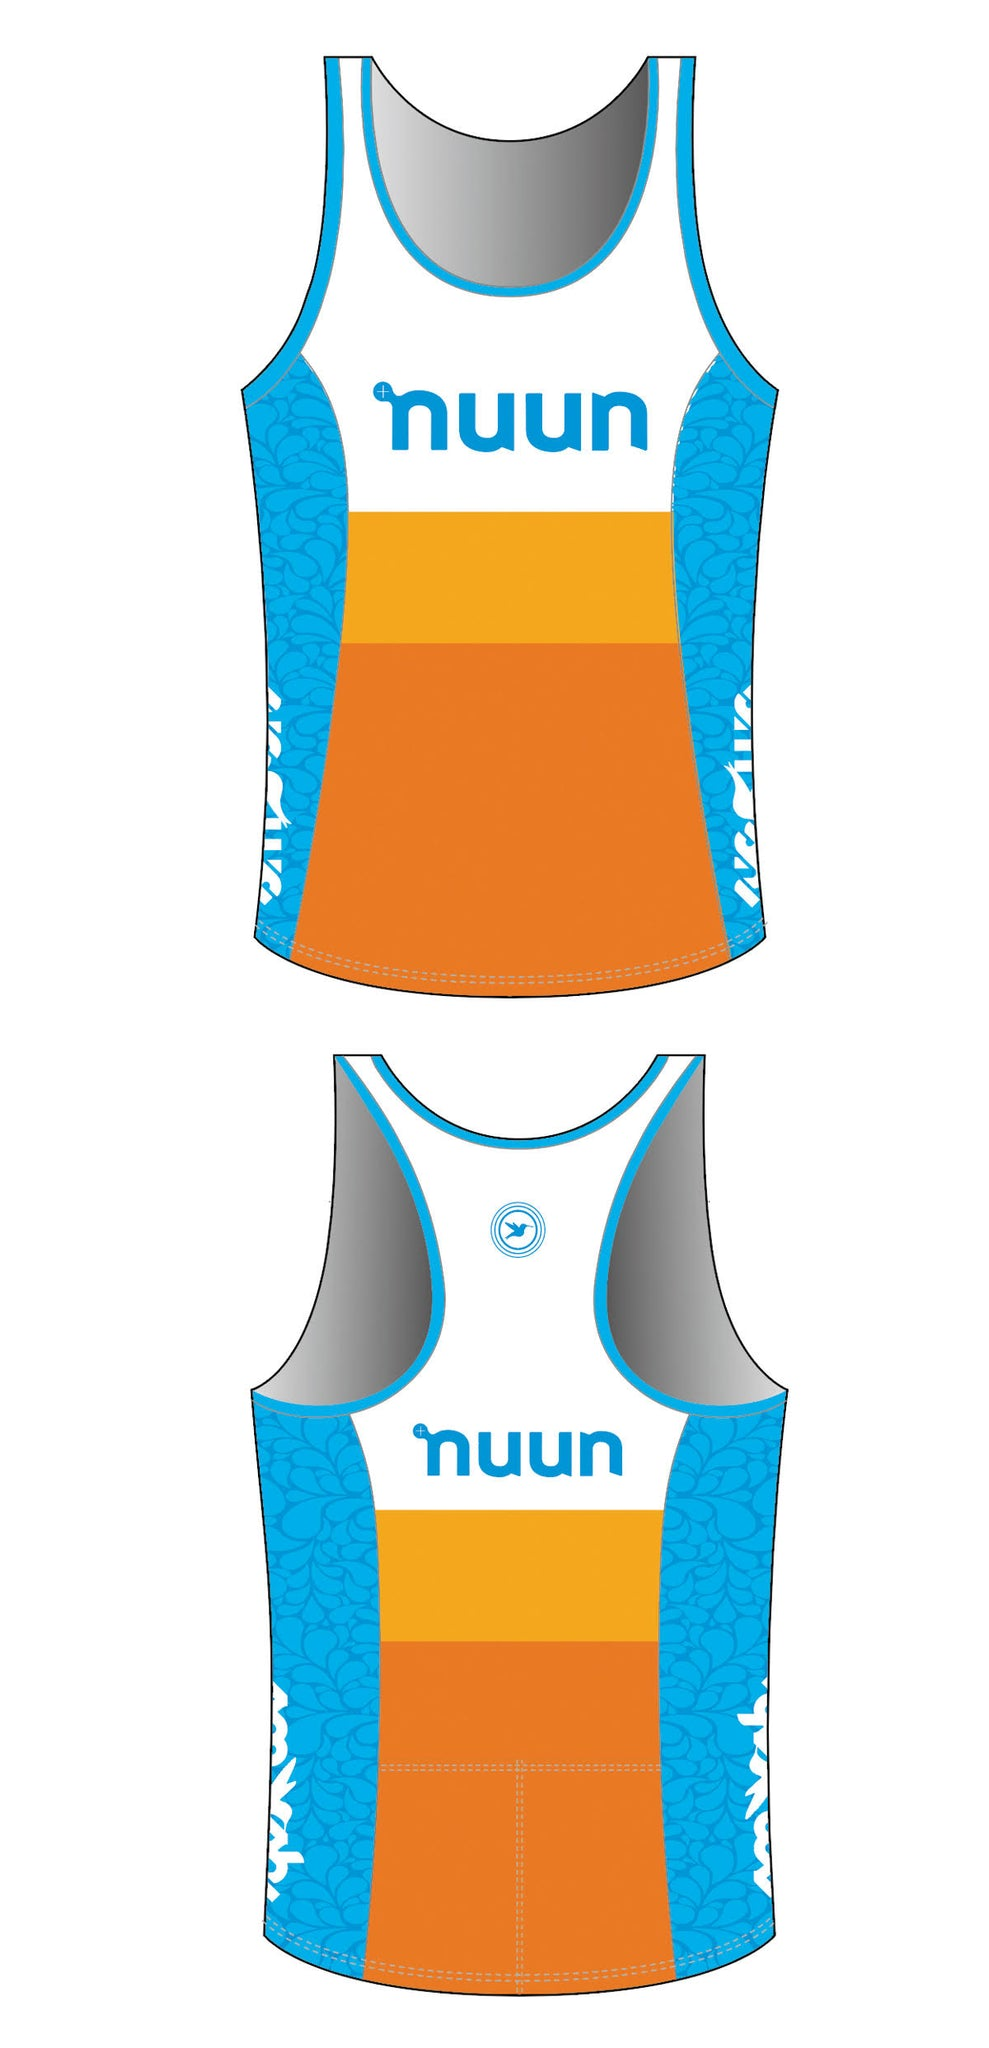 2021 Nuun Hydration Women's Tri Top with Built-in Bra Pre-order